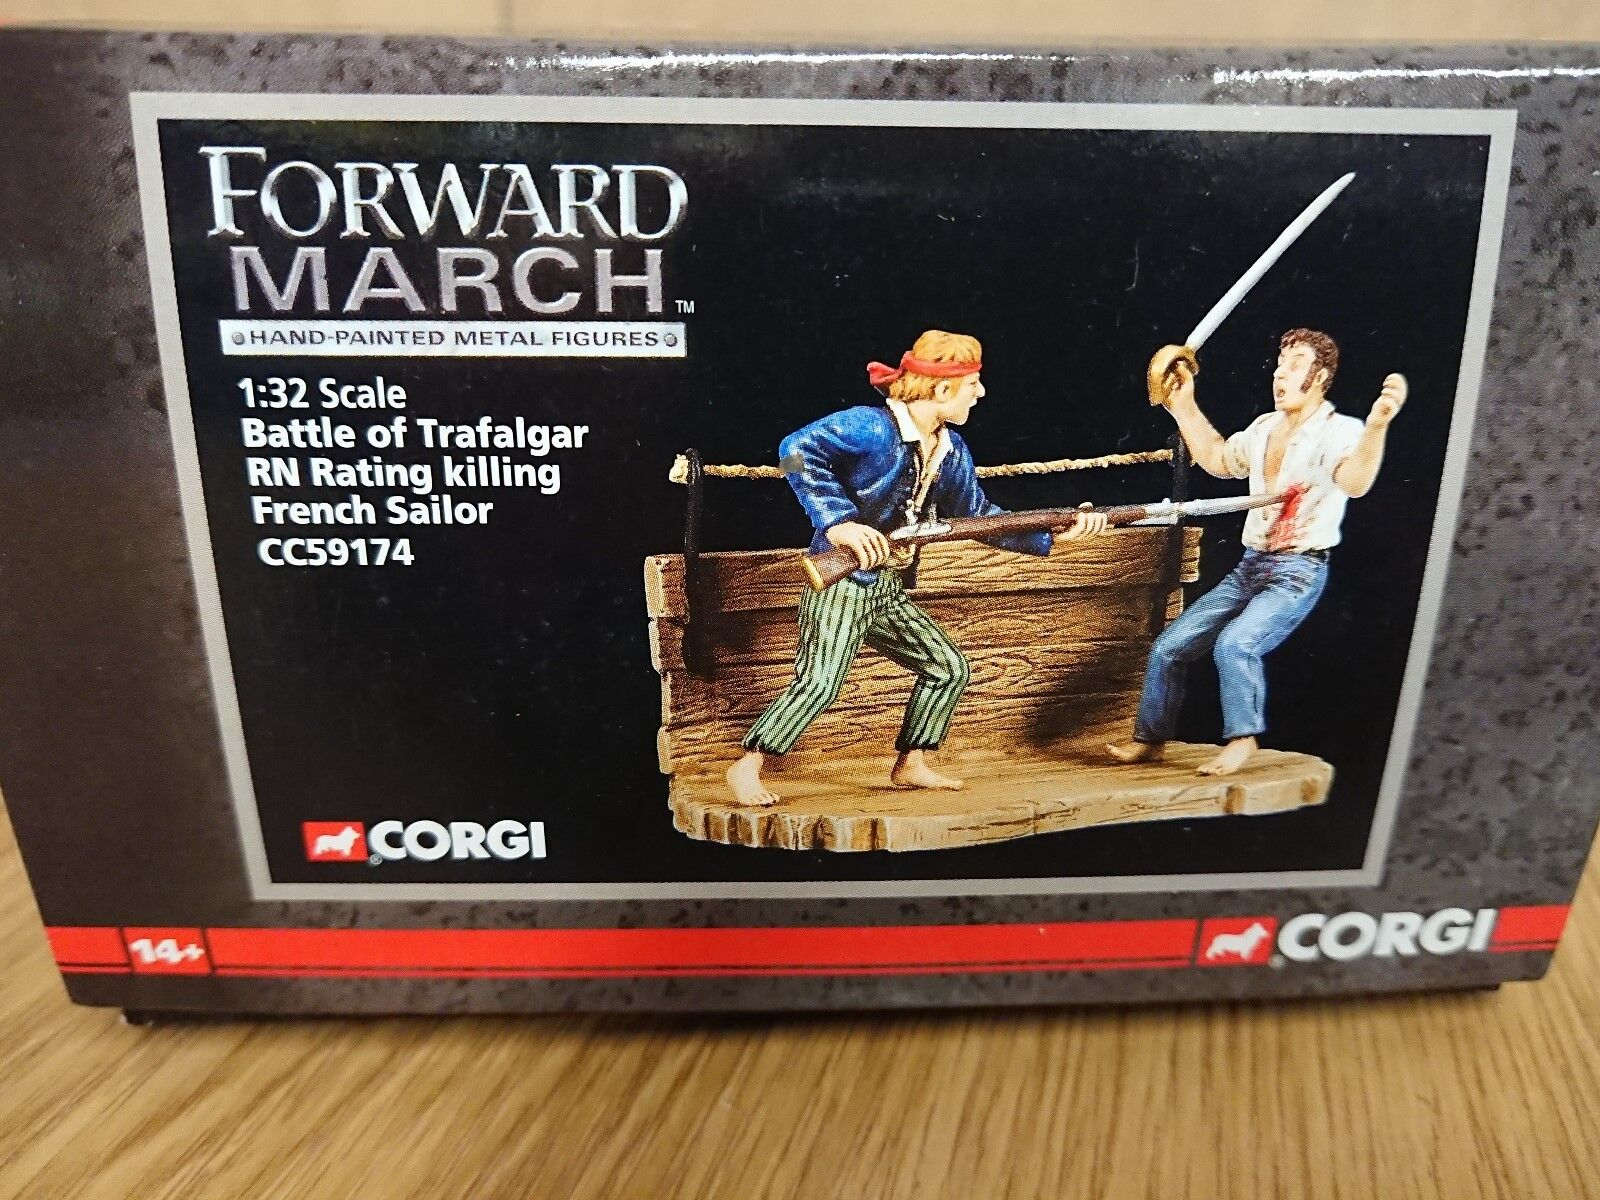 CORGI CC59174 Marche Battle of Trafalgar R.N. Rating Ltd Modifier. 1250